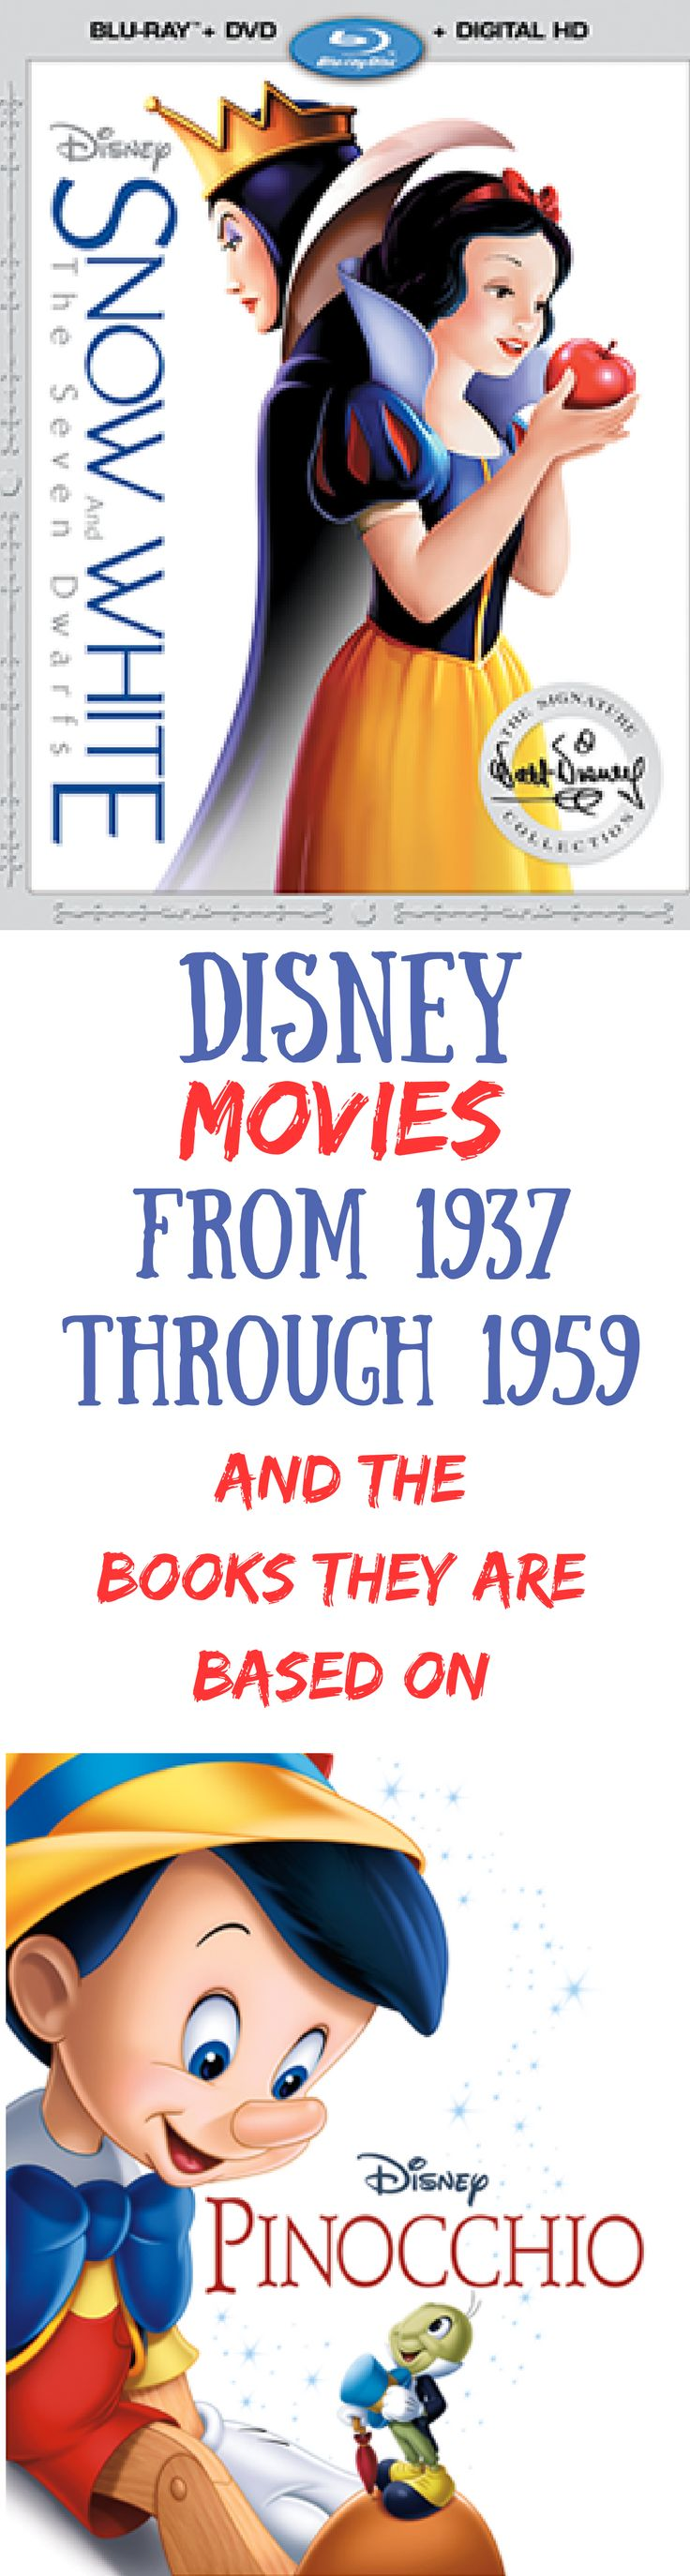 List of Disney Movies in Chronological Order - Part 1 ...